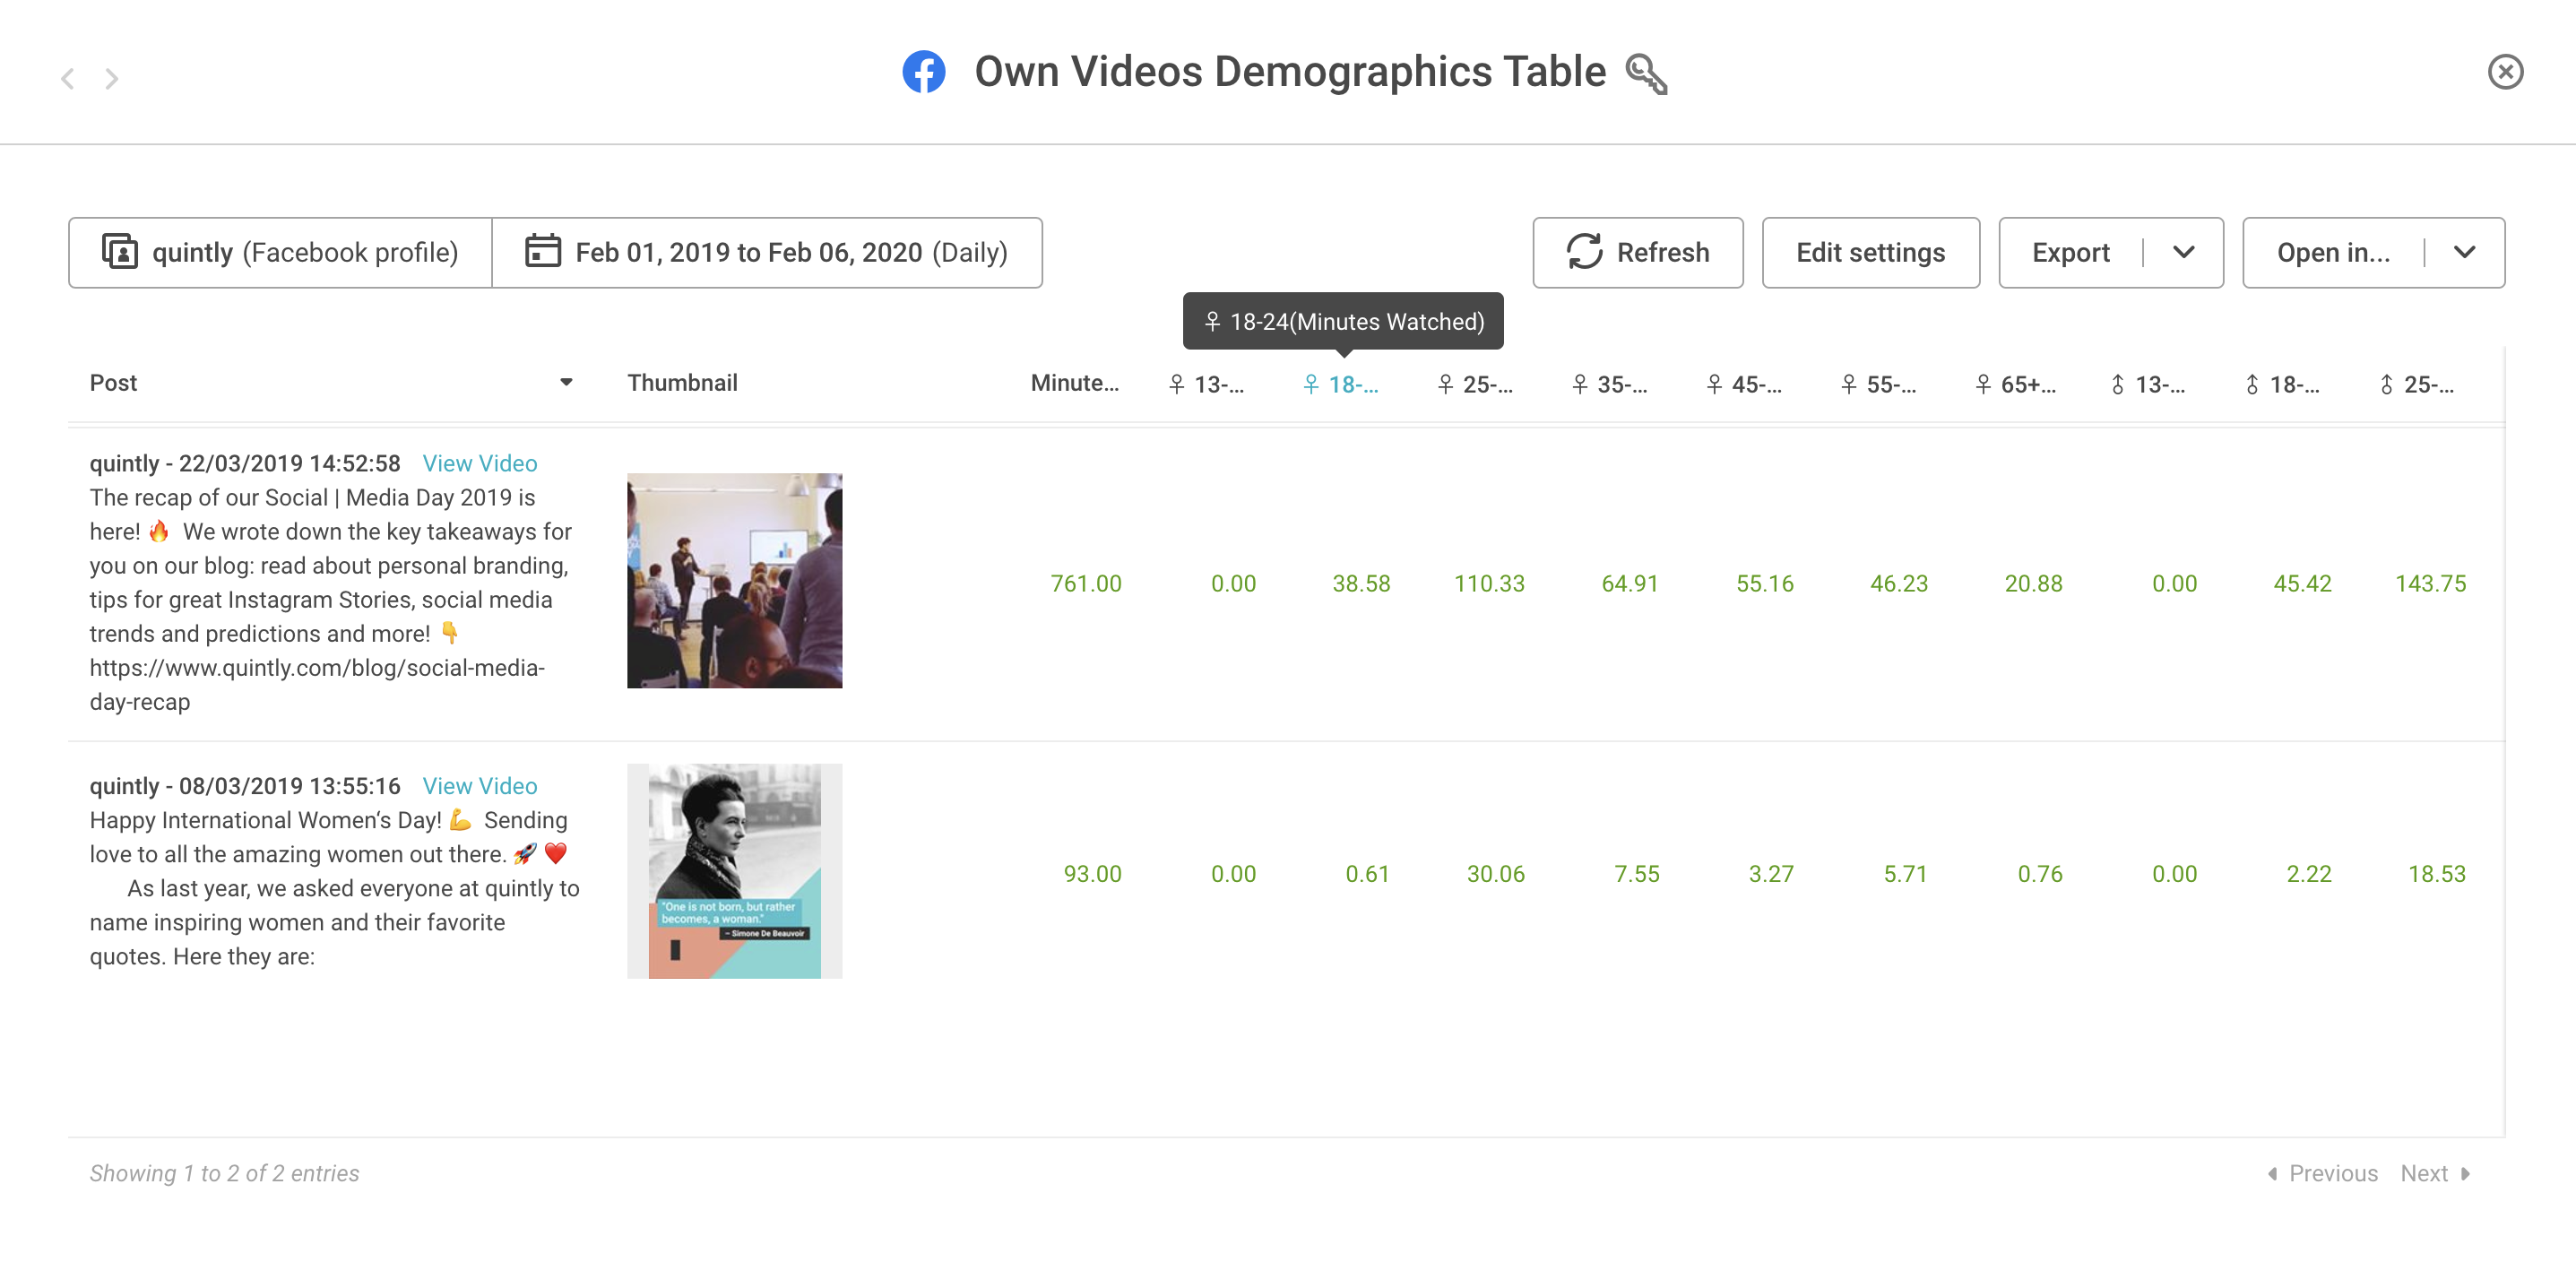 videoview+demographics